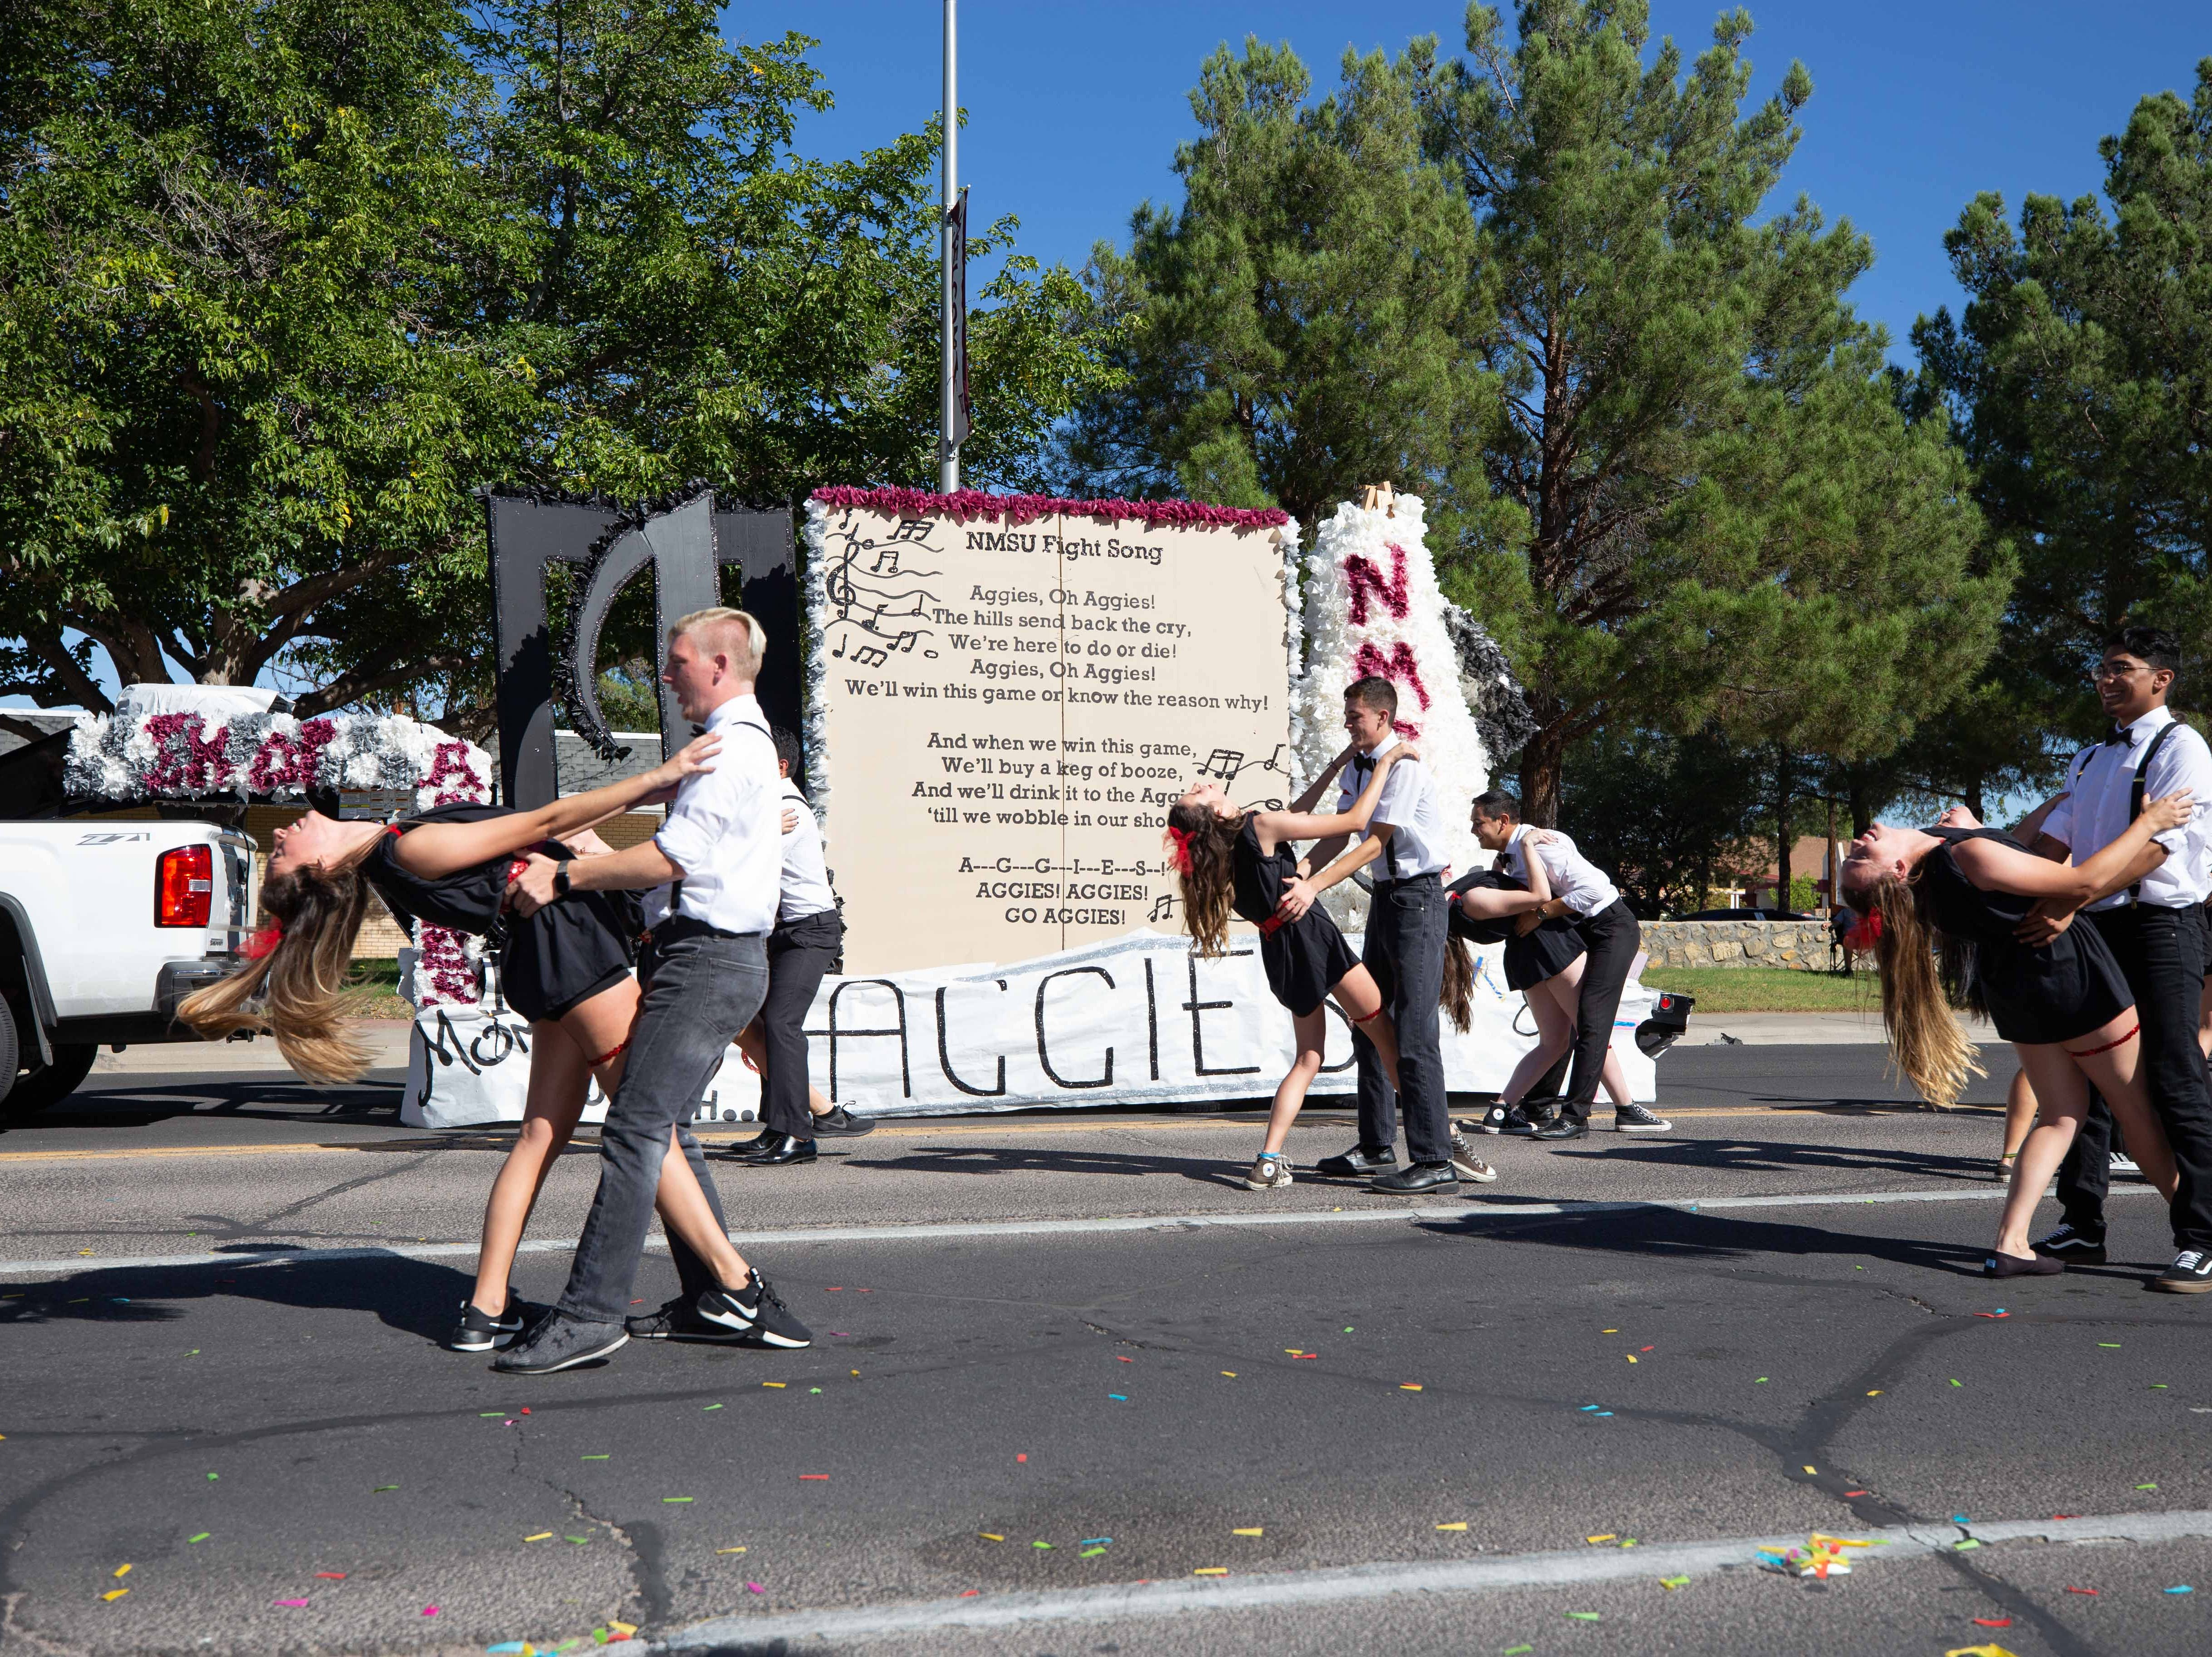 Pike and Delta Zeta dance troupe and float at the NMSU Homecoming Parade on October 6, 2018.